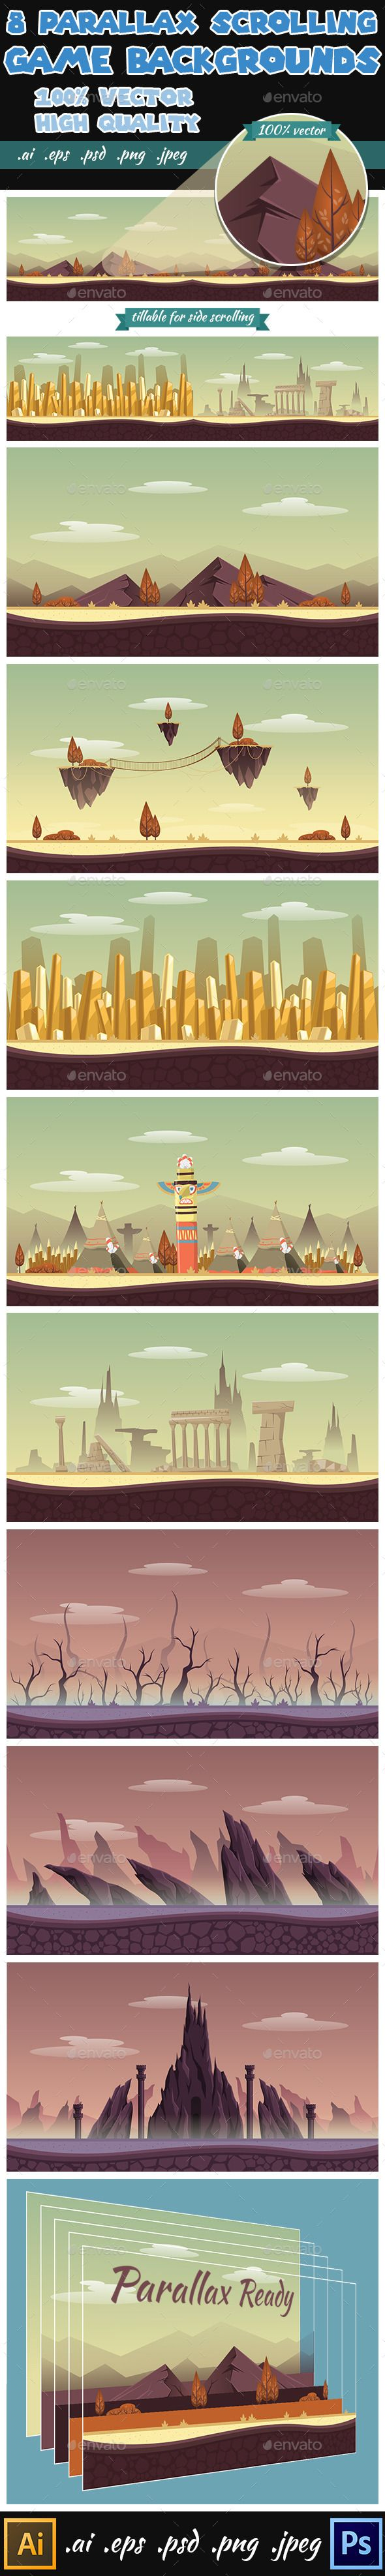 8 Game Backgrounds Parallex Side Scrolling 2d game